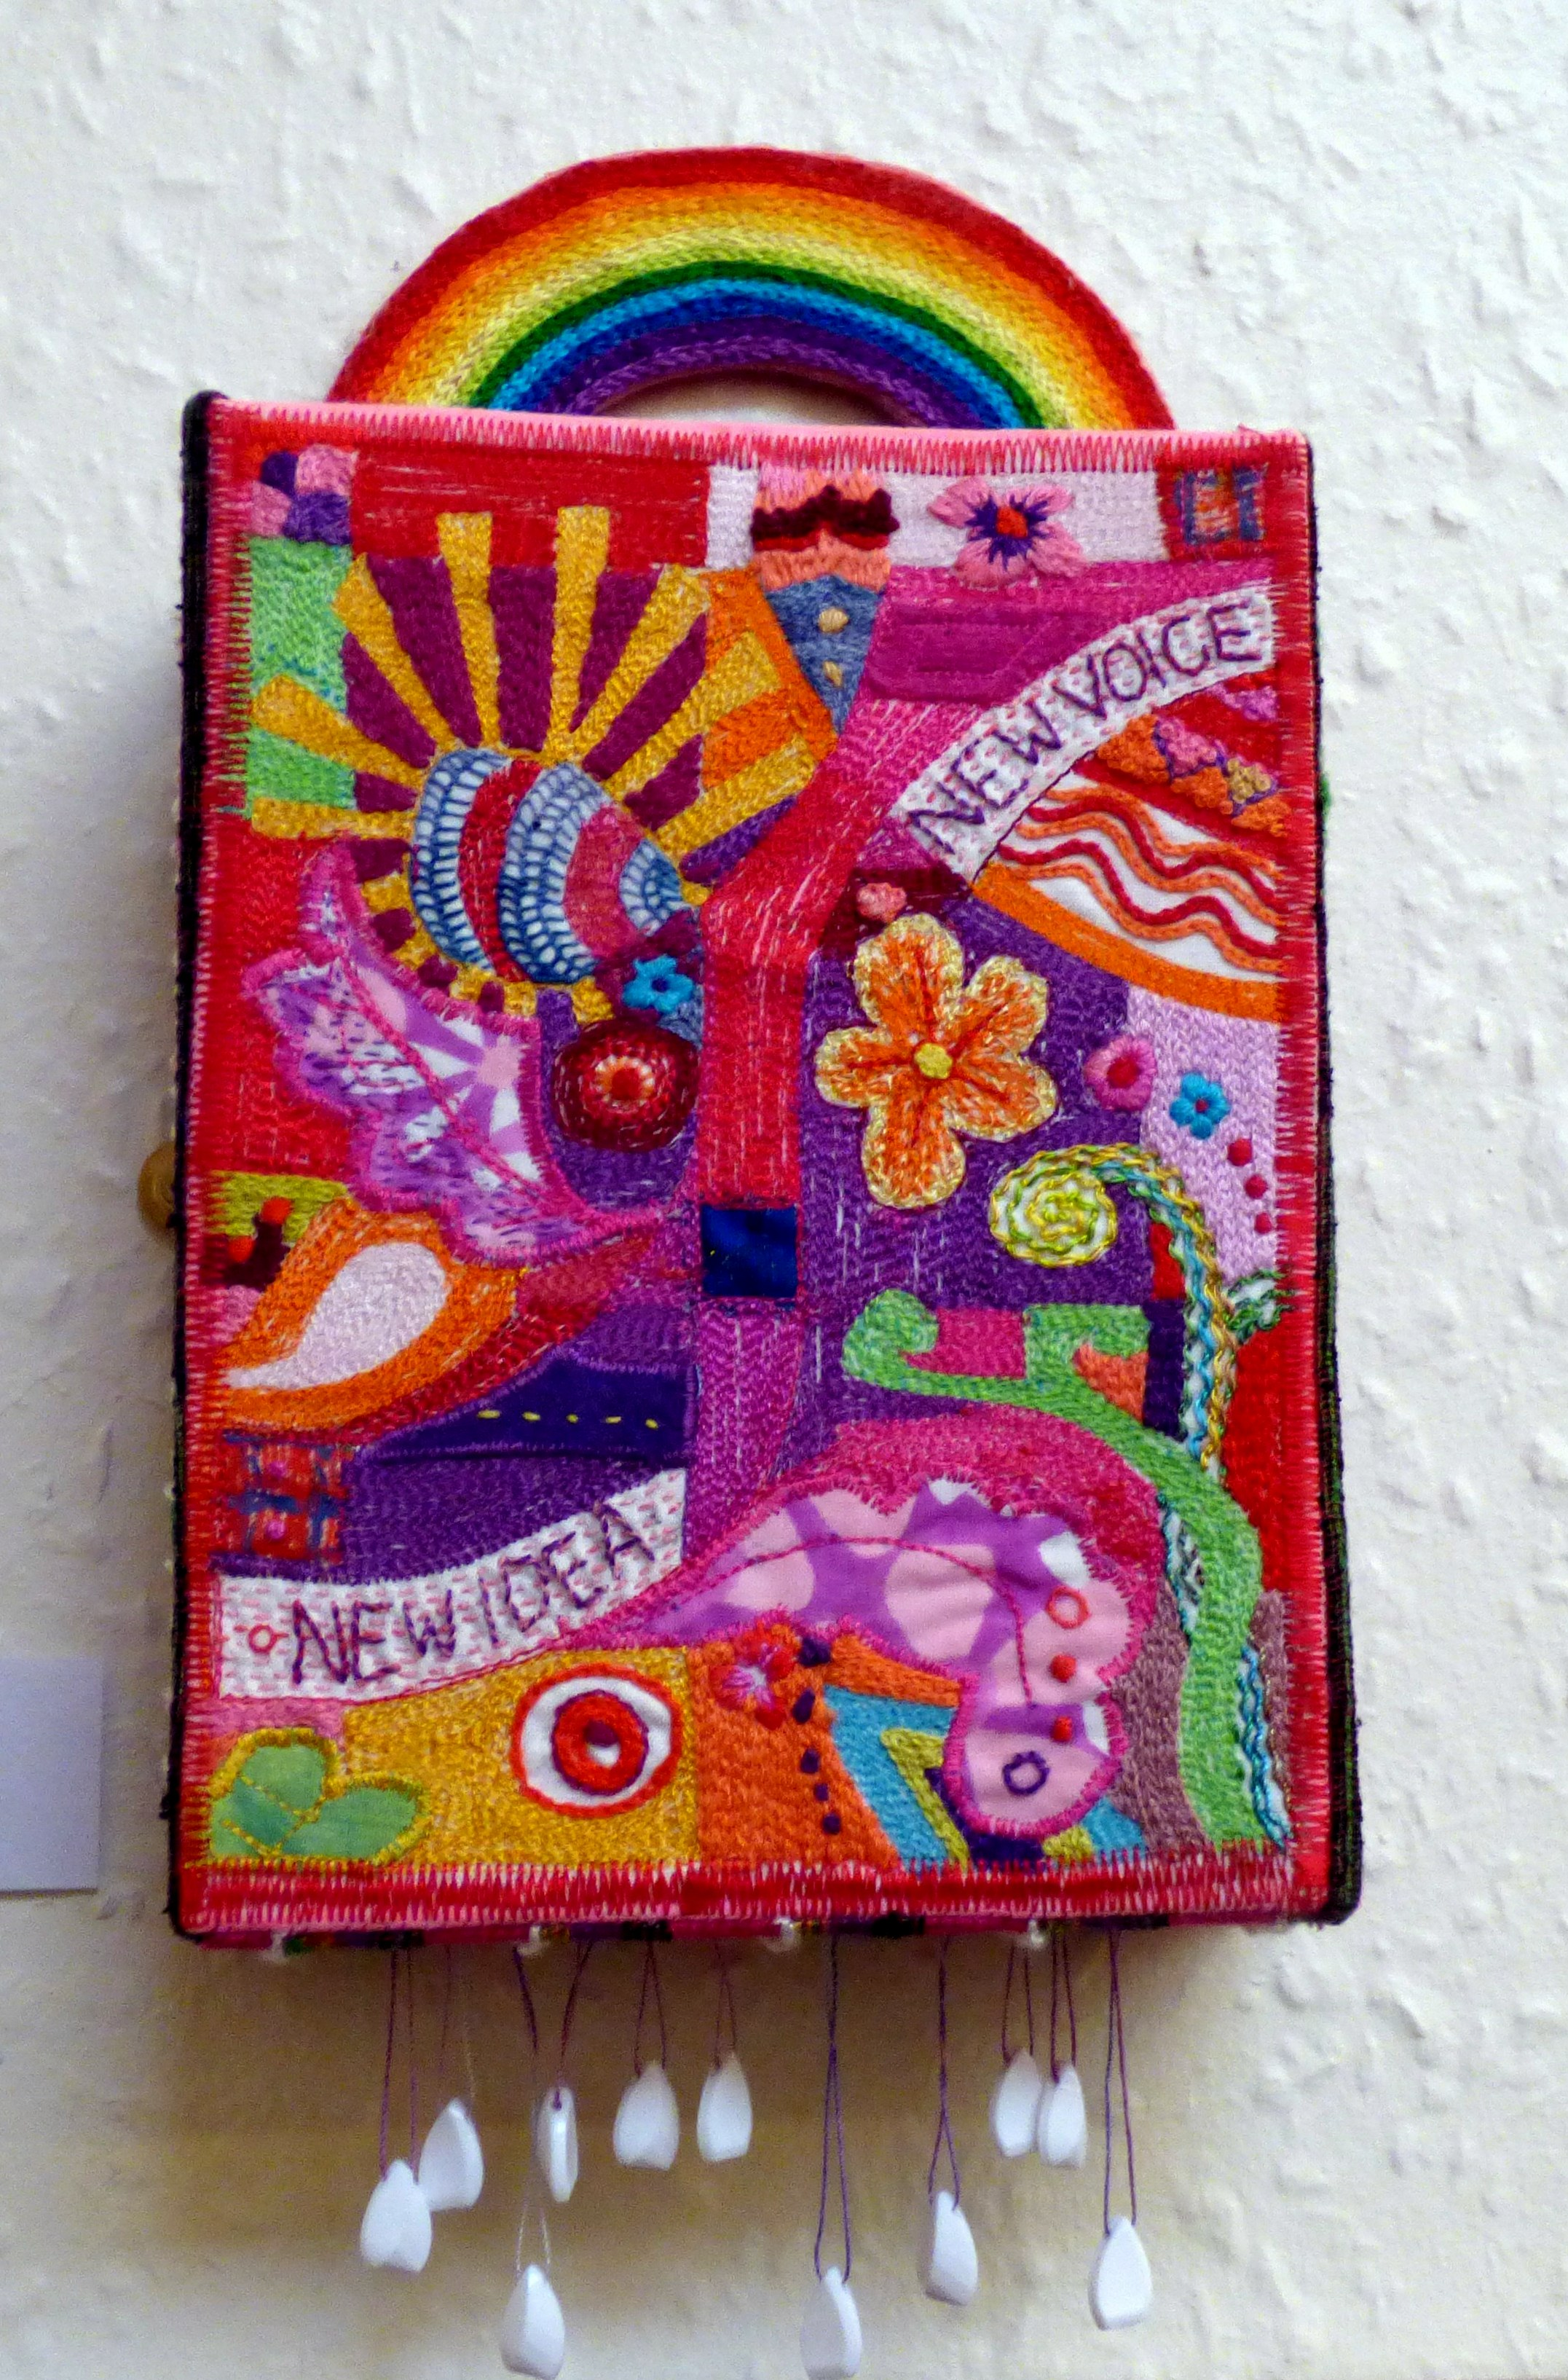 RAINBOW BOX by Sue Boardman, hand and machine embroidery